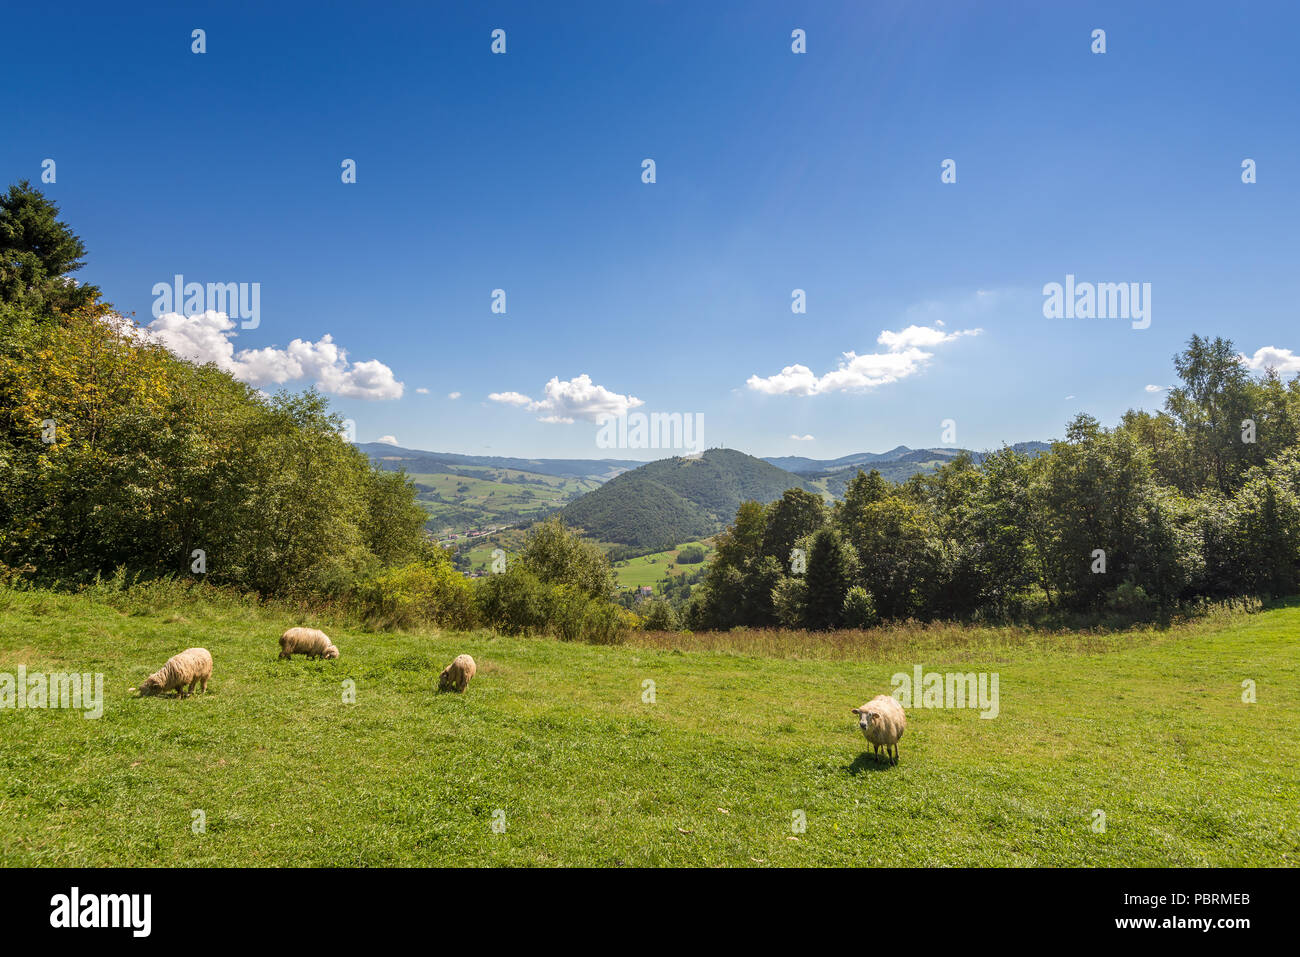 Grazing sheep on pasture in Pieniny mountains. Poland. - Stock Image